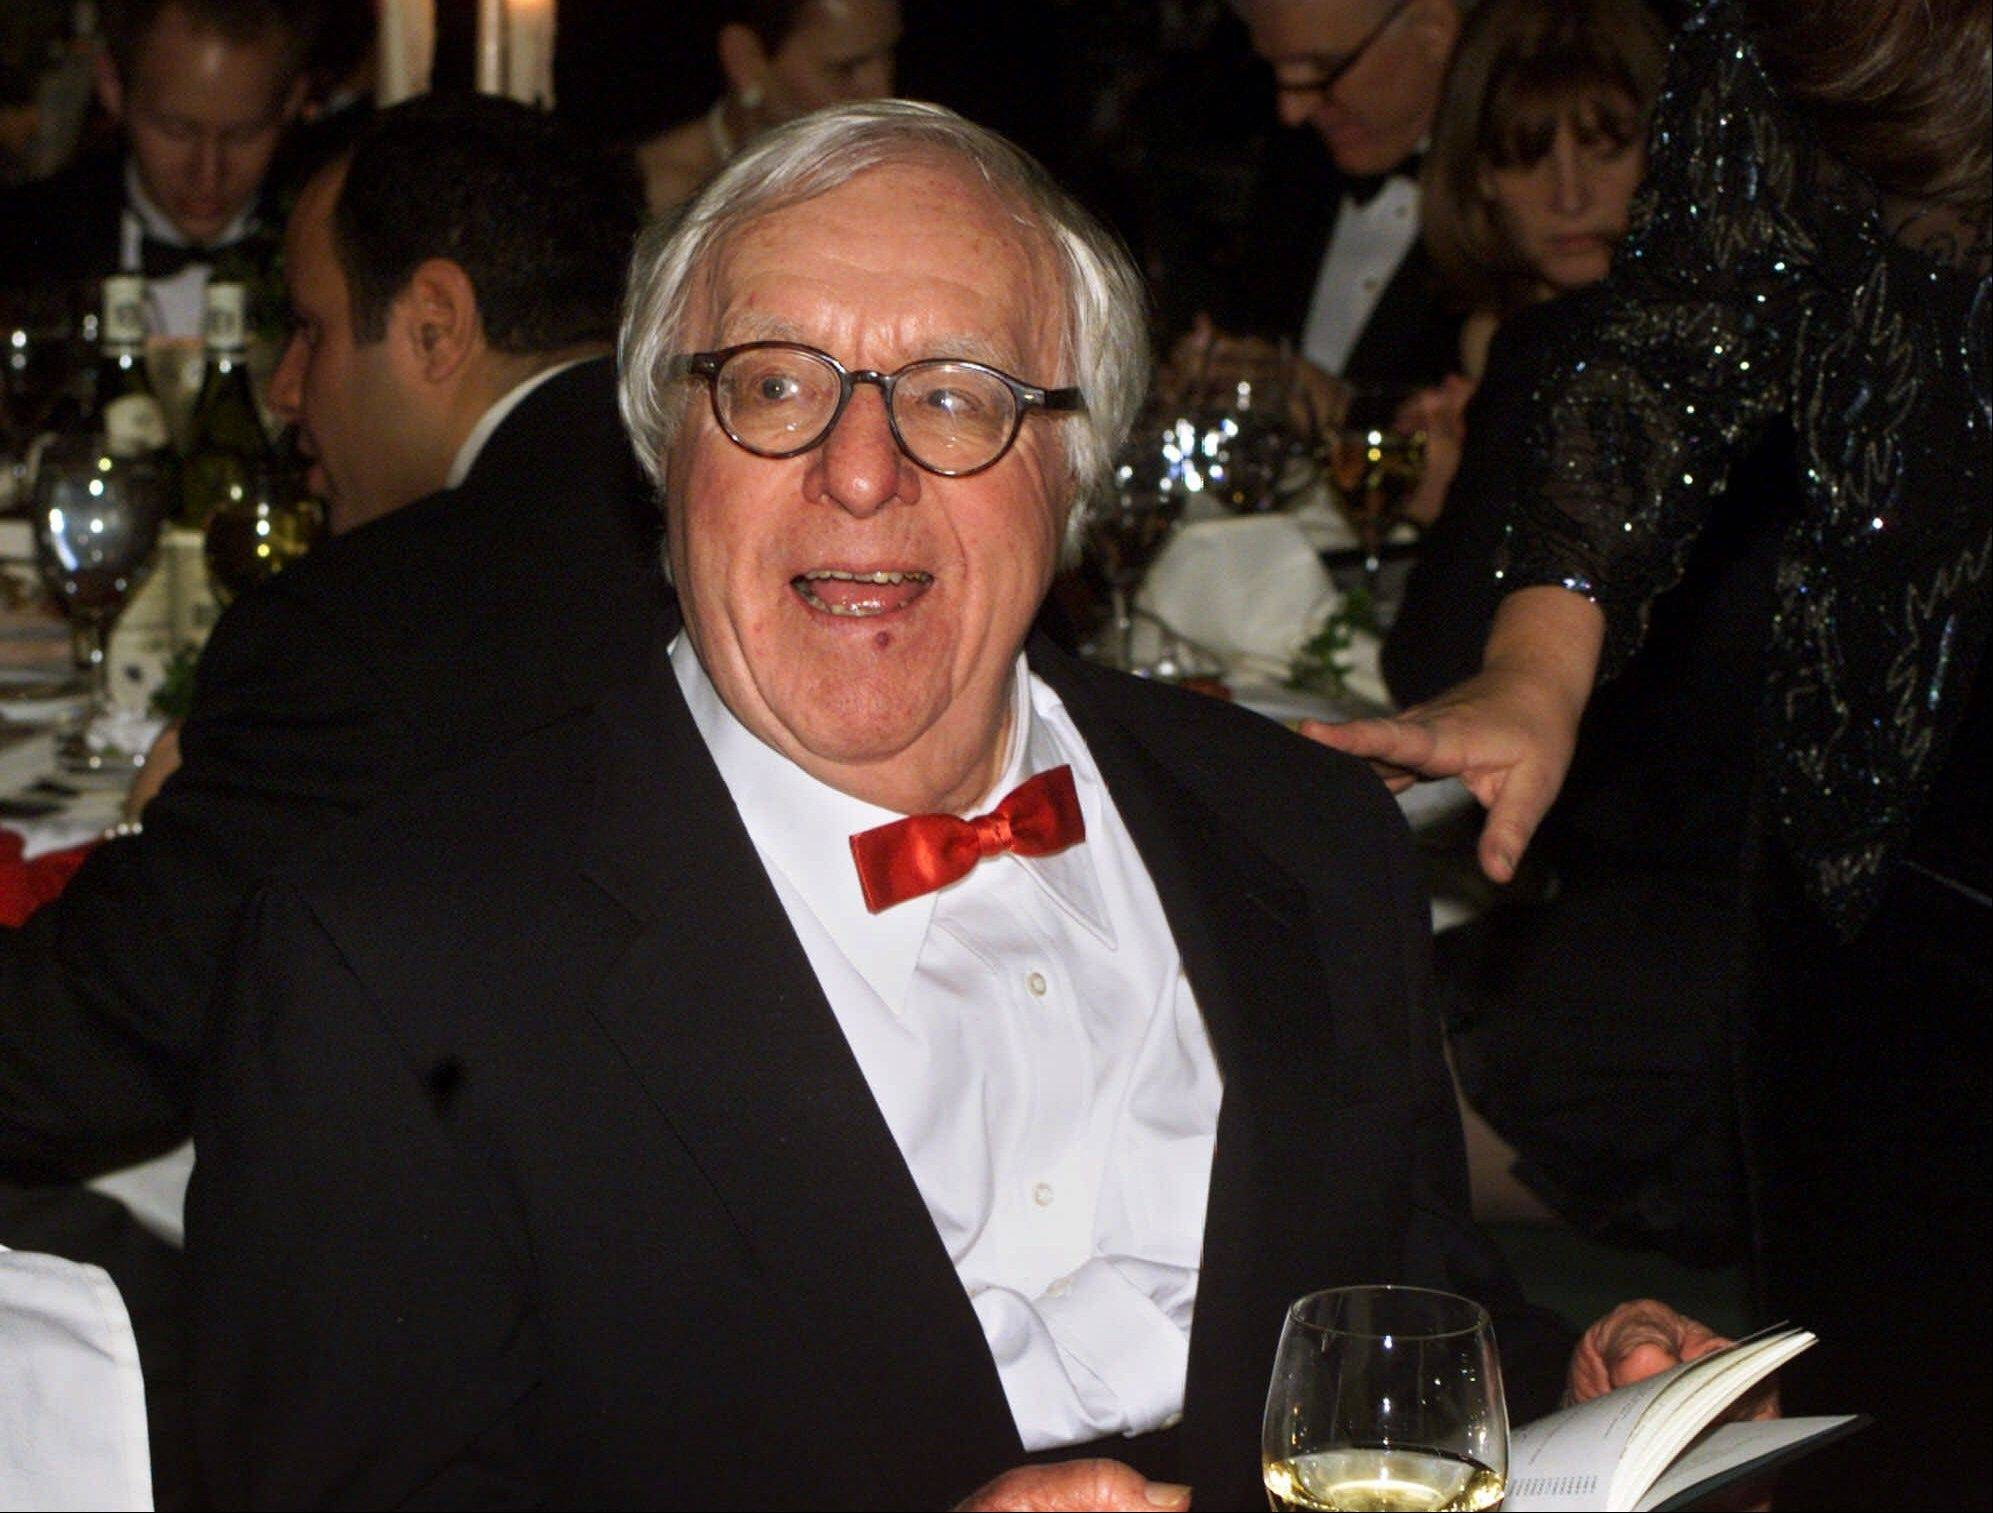 Ray Bradbury, who wrote everything from science-fiction and mystery to humor, died on June 5. He was 91.